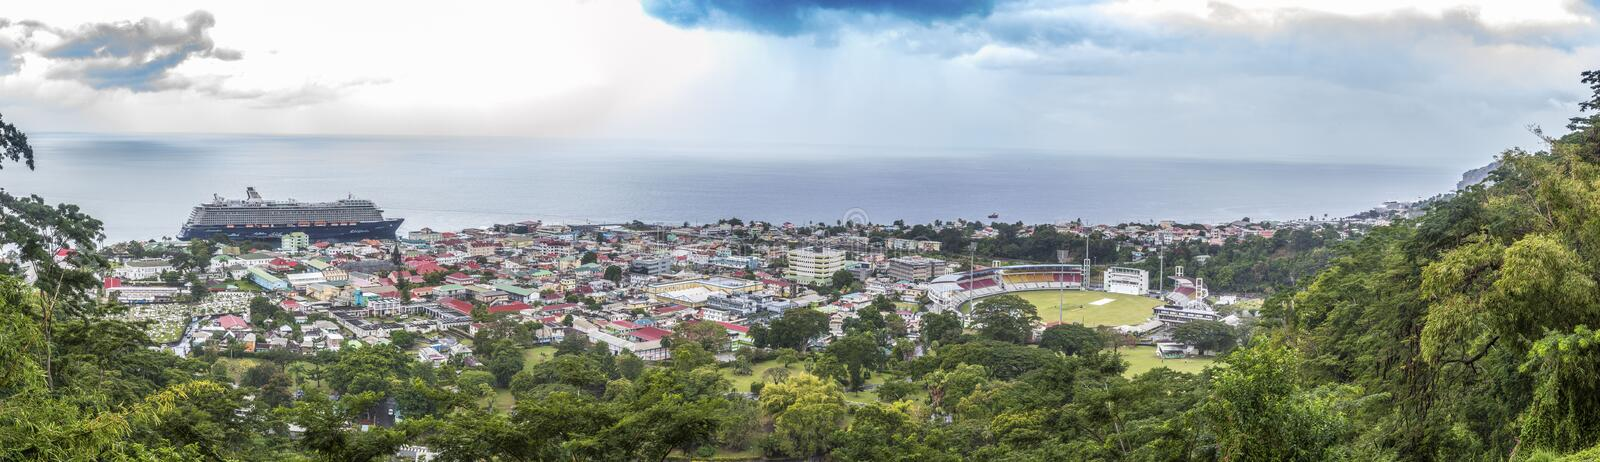 Panoramic picture of the city of Roseau on Dominica island stock photos